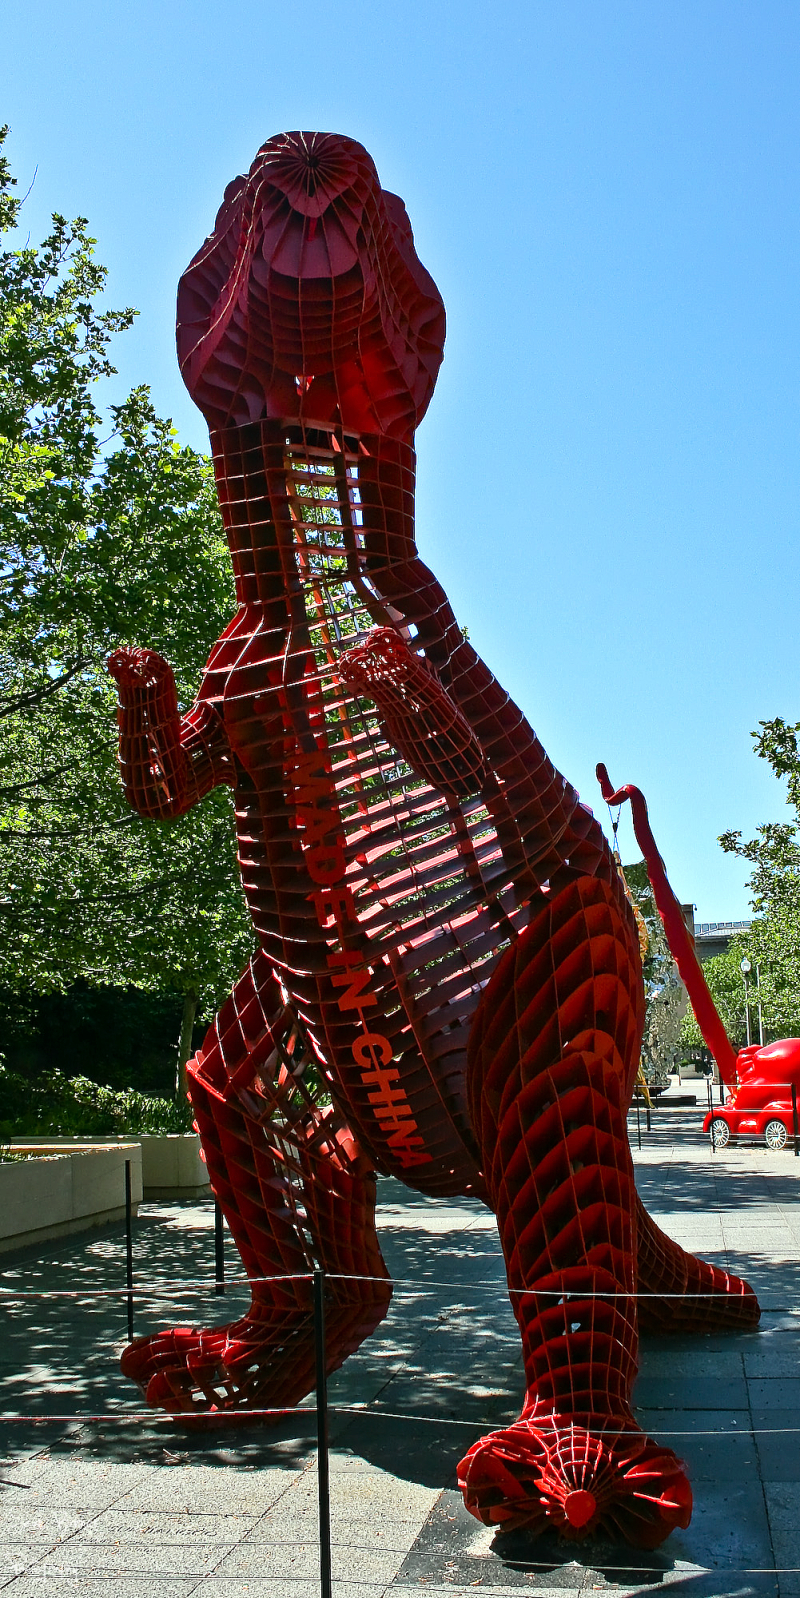 Red T-Rex sculpture in chicago